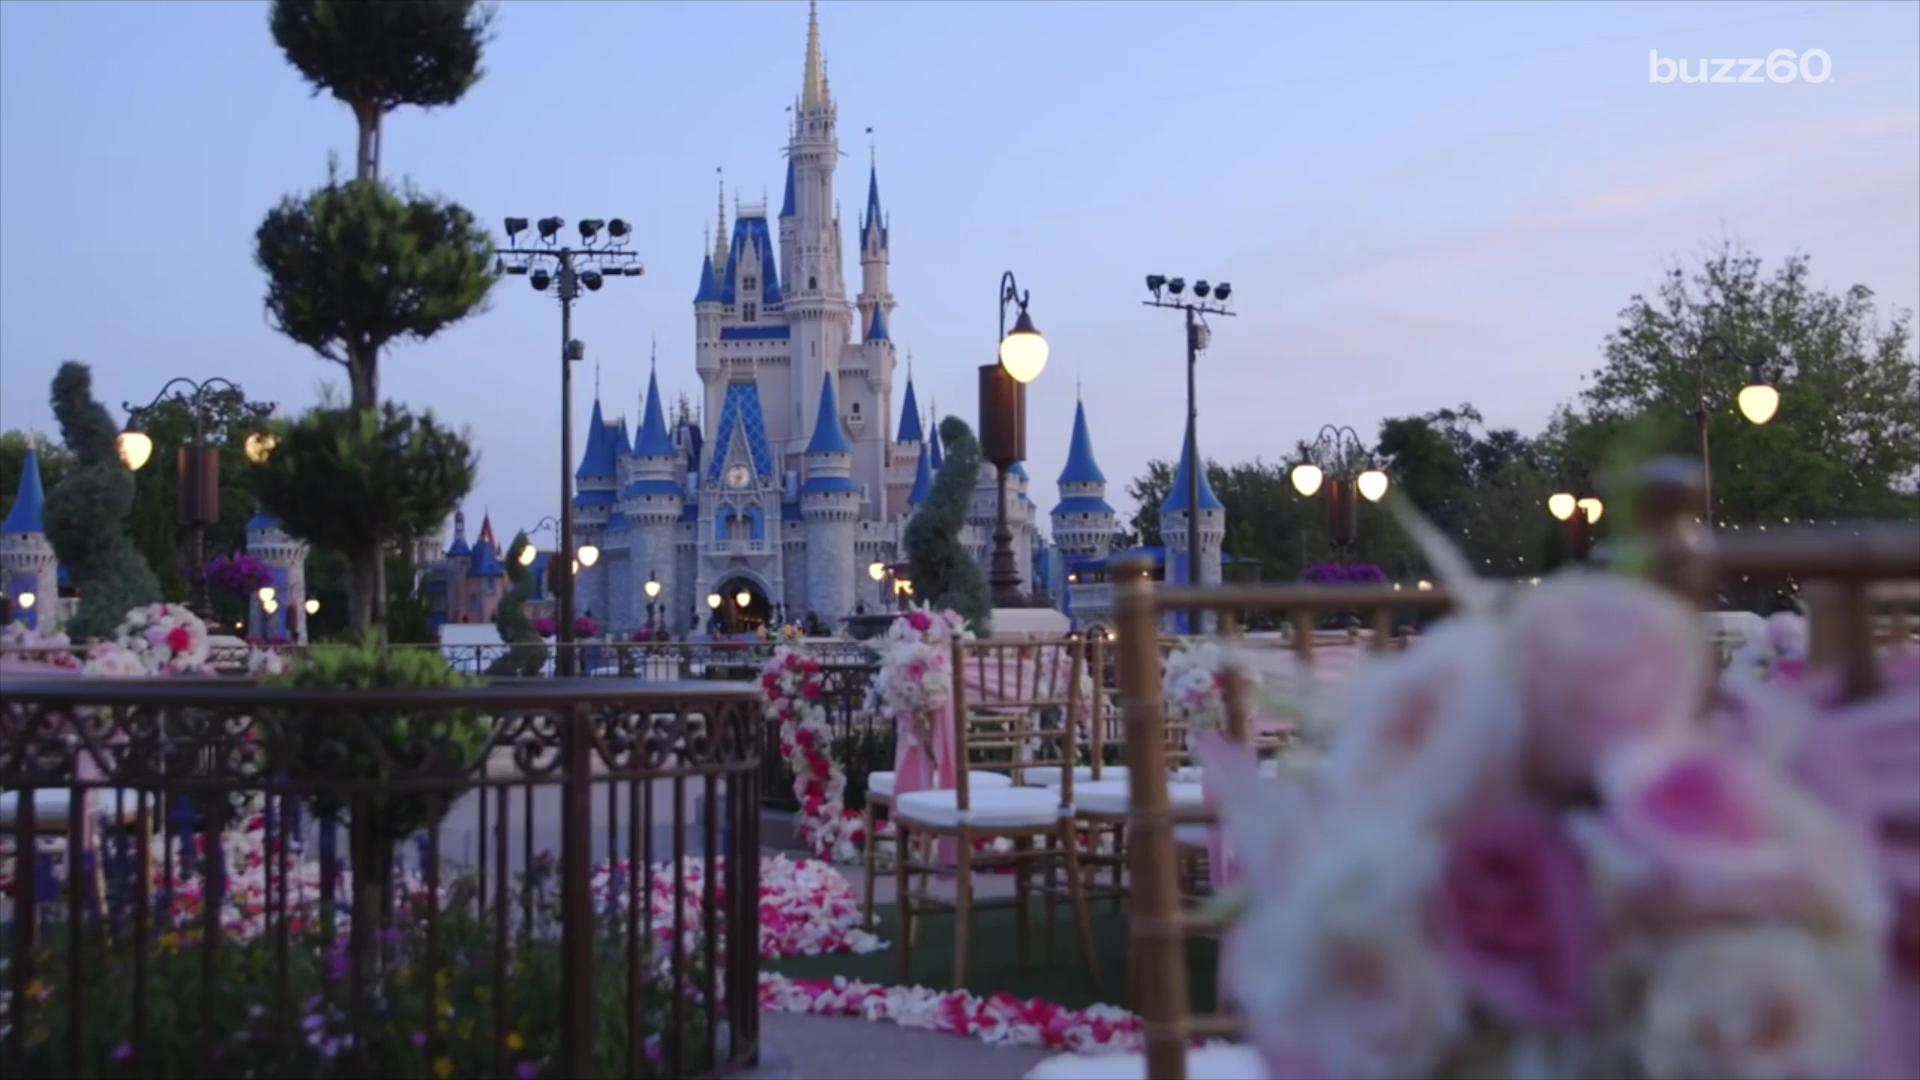 When you wish upon a star for your fairytale wedding, be sure to ask for an extra $75,000 if you want to marry your Prince just like Cinderella. Keri Lumm (@thekerilumm) reports on this new wedding venue.